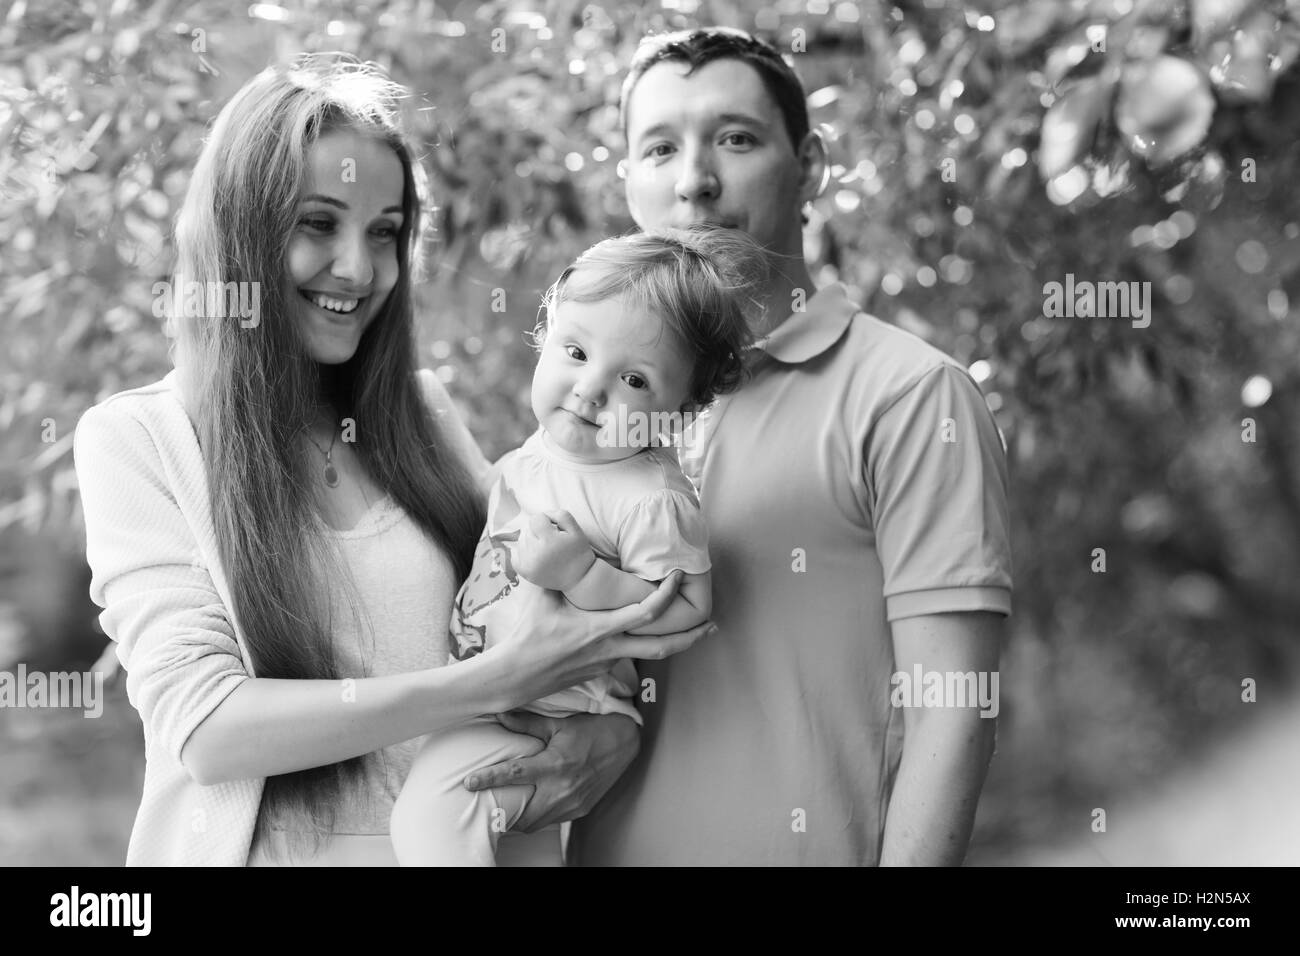 happy couple with daughter in park, black - white photo - Stock Image